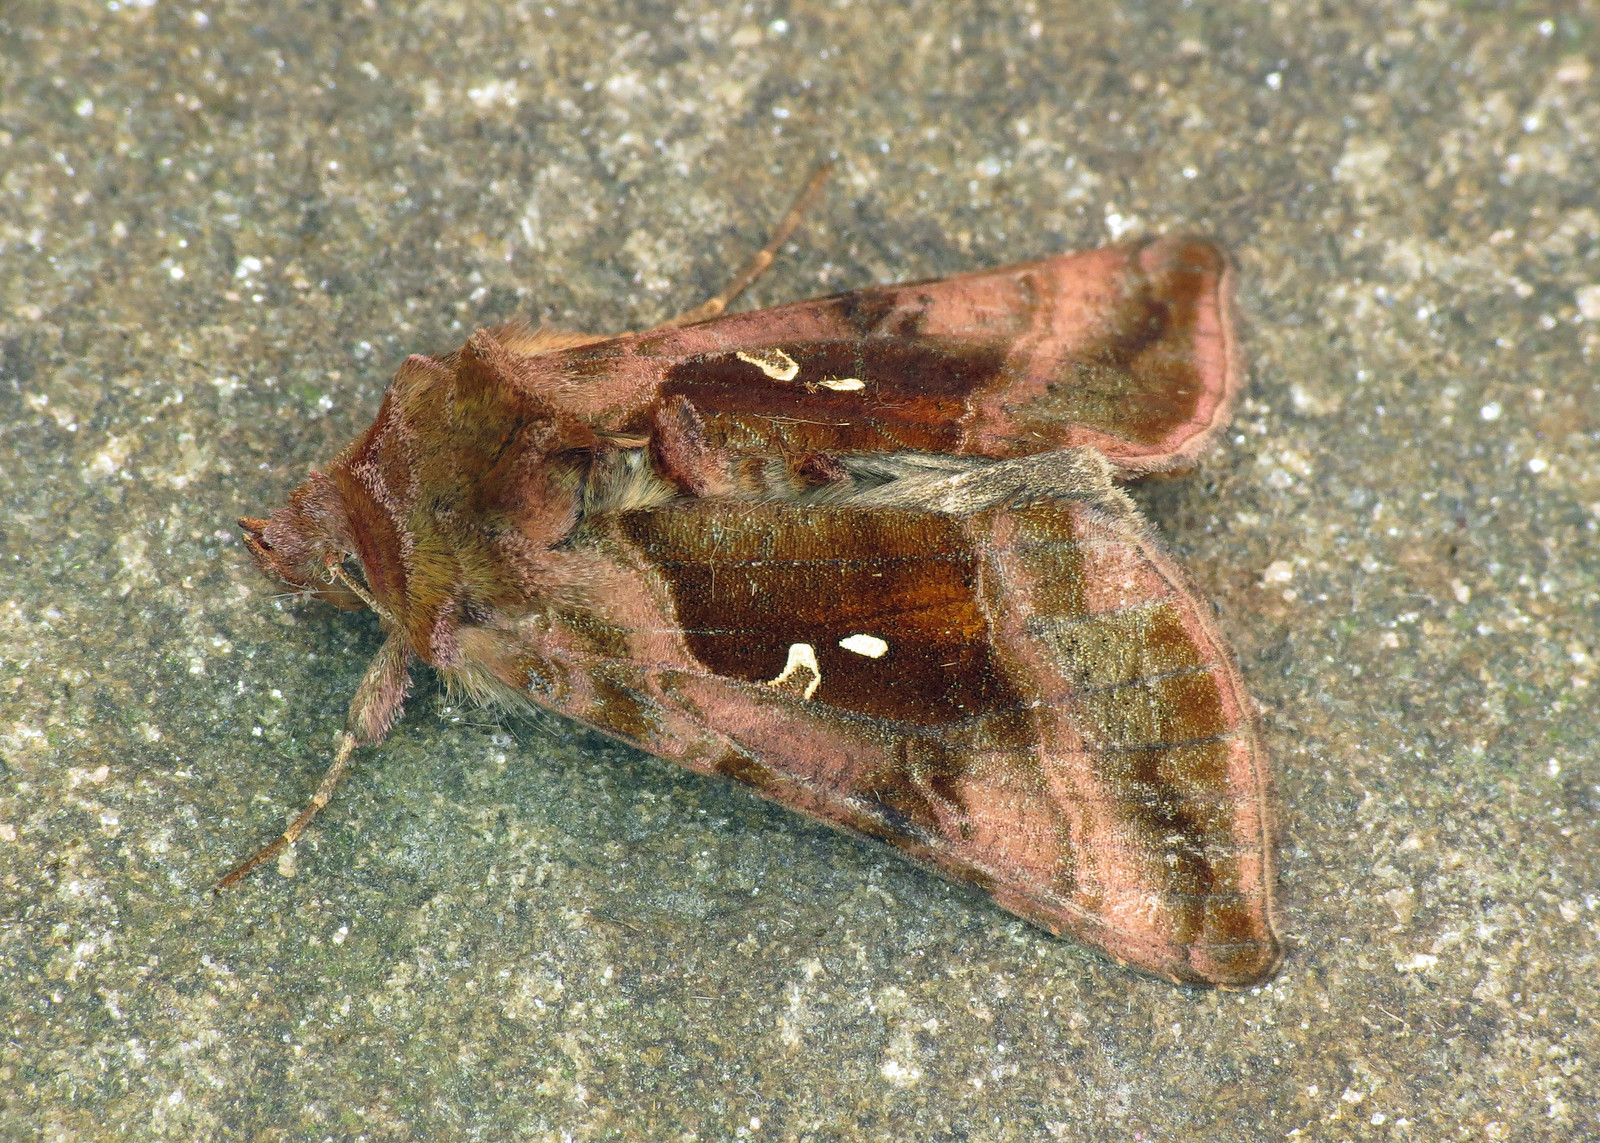 2443 Plain Golden Y - Autographa jota